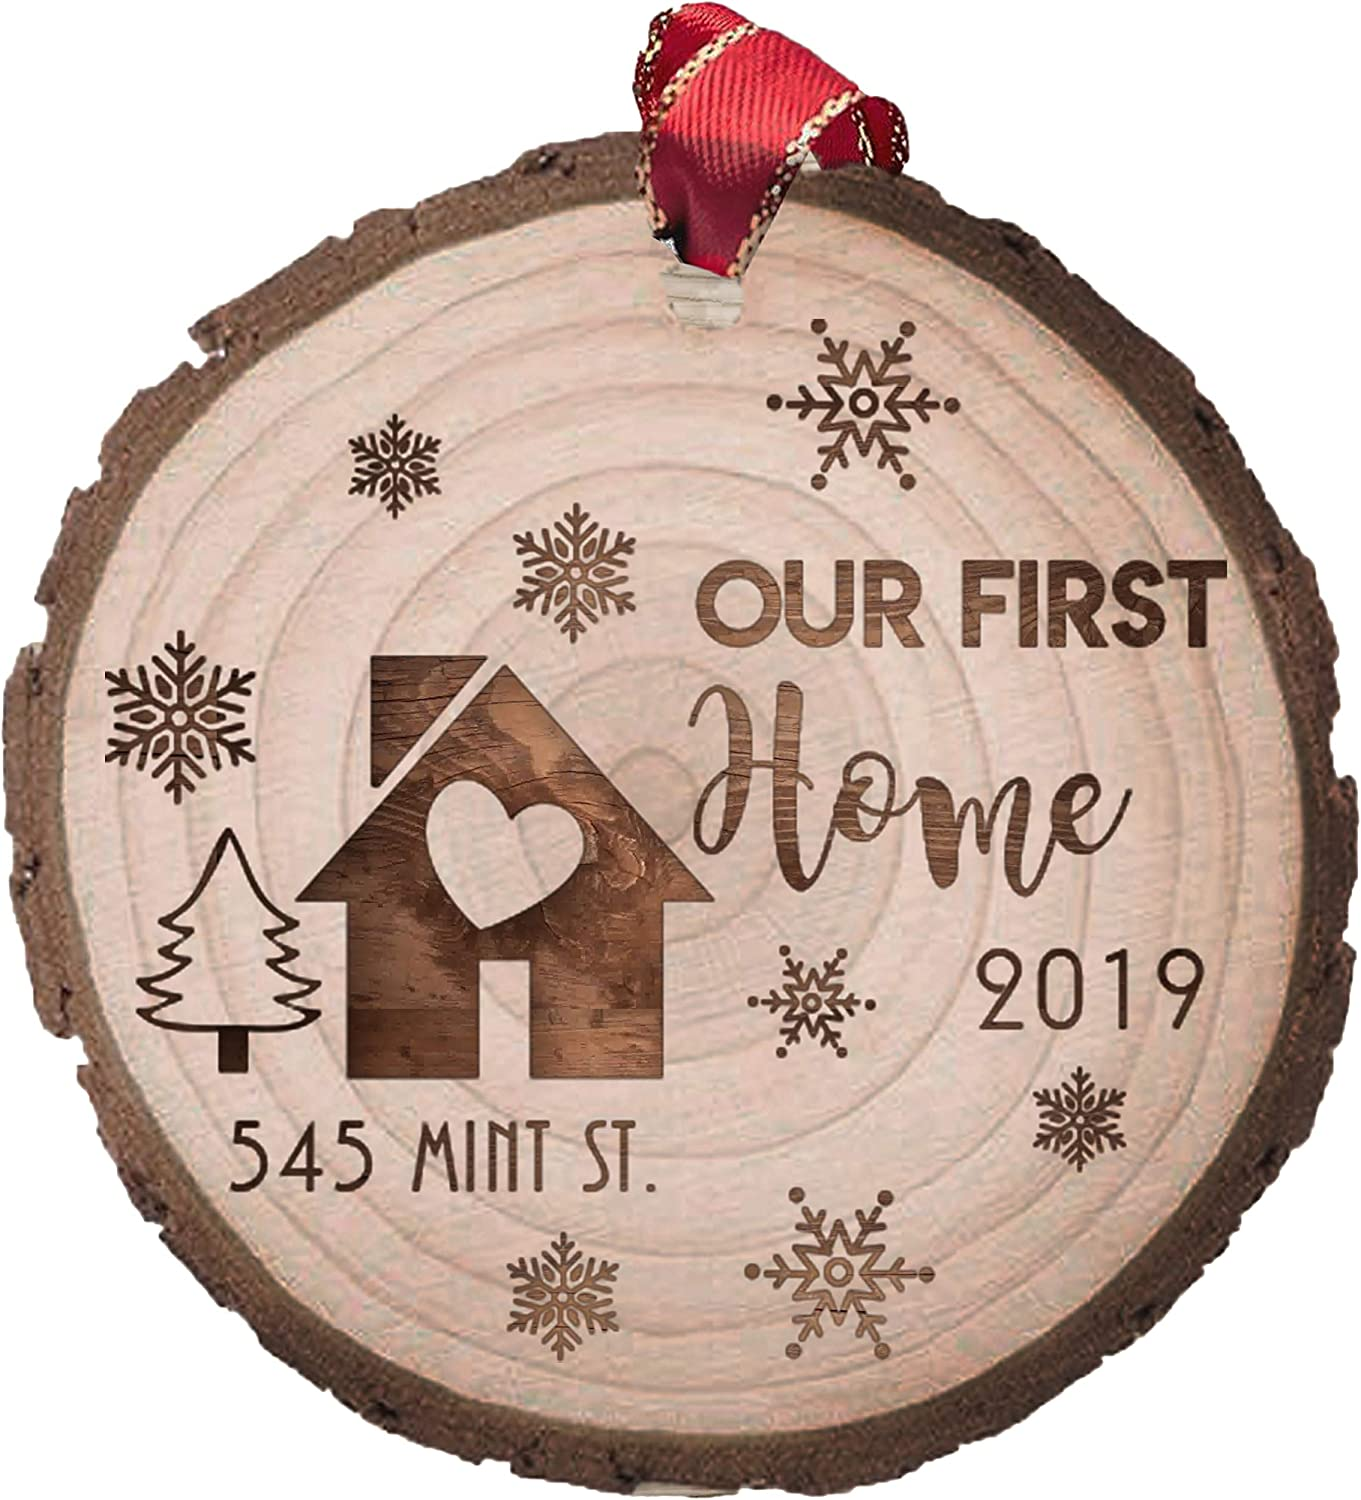 Our First House Customized Christmas Ornament, Laser Engraved Wood Slice, New House Gift, Gift for Couples, Family Name Personalized Decor (Option 2)